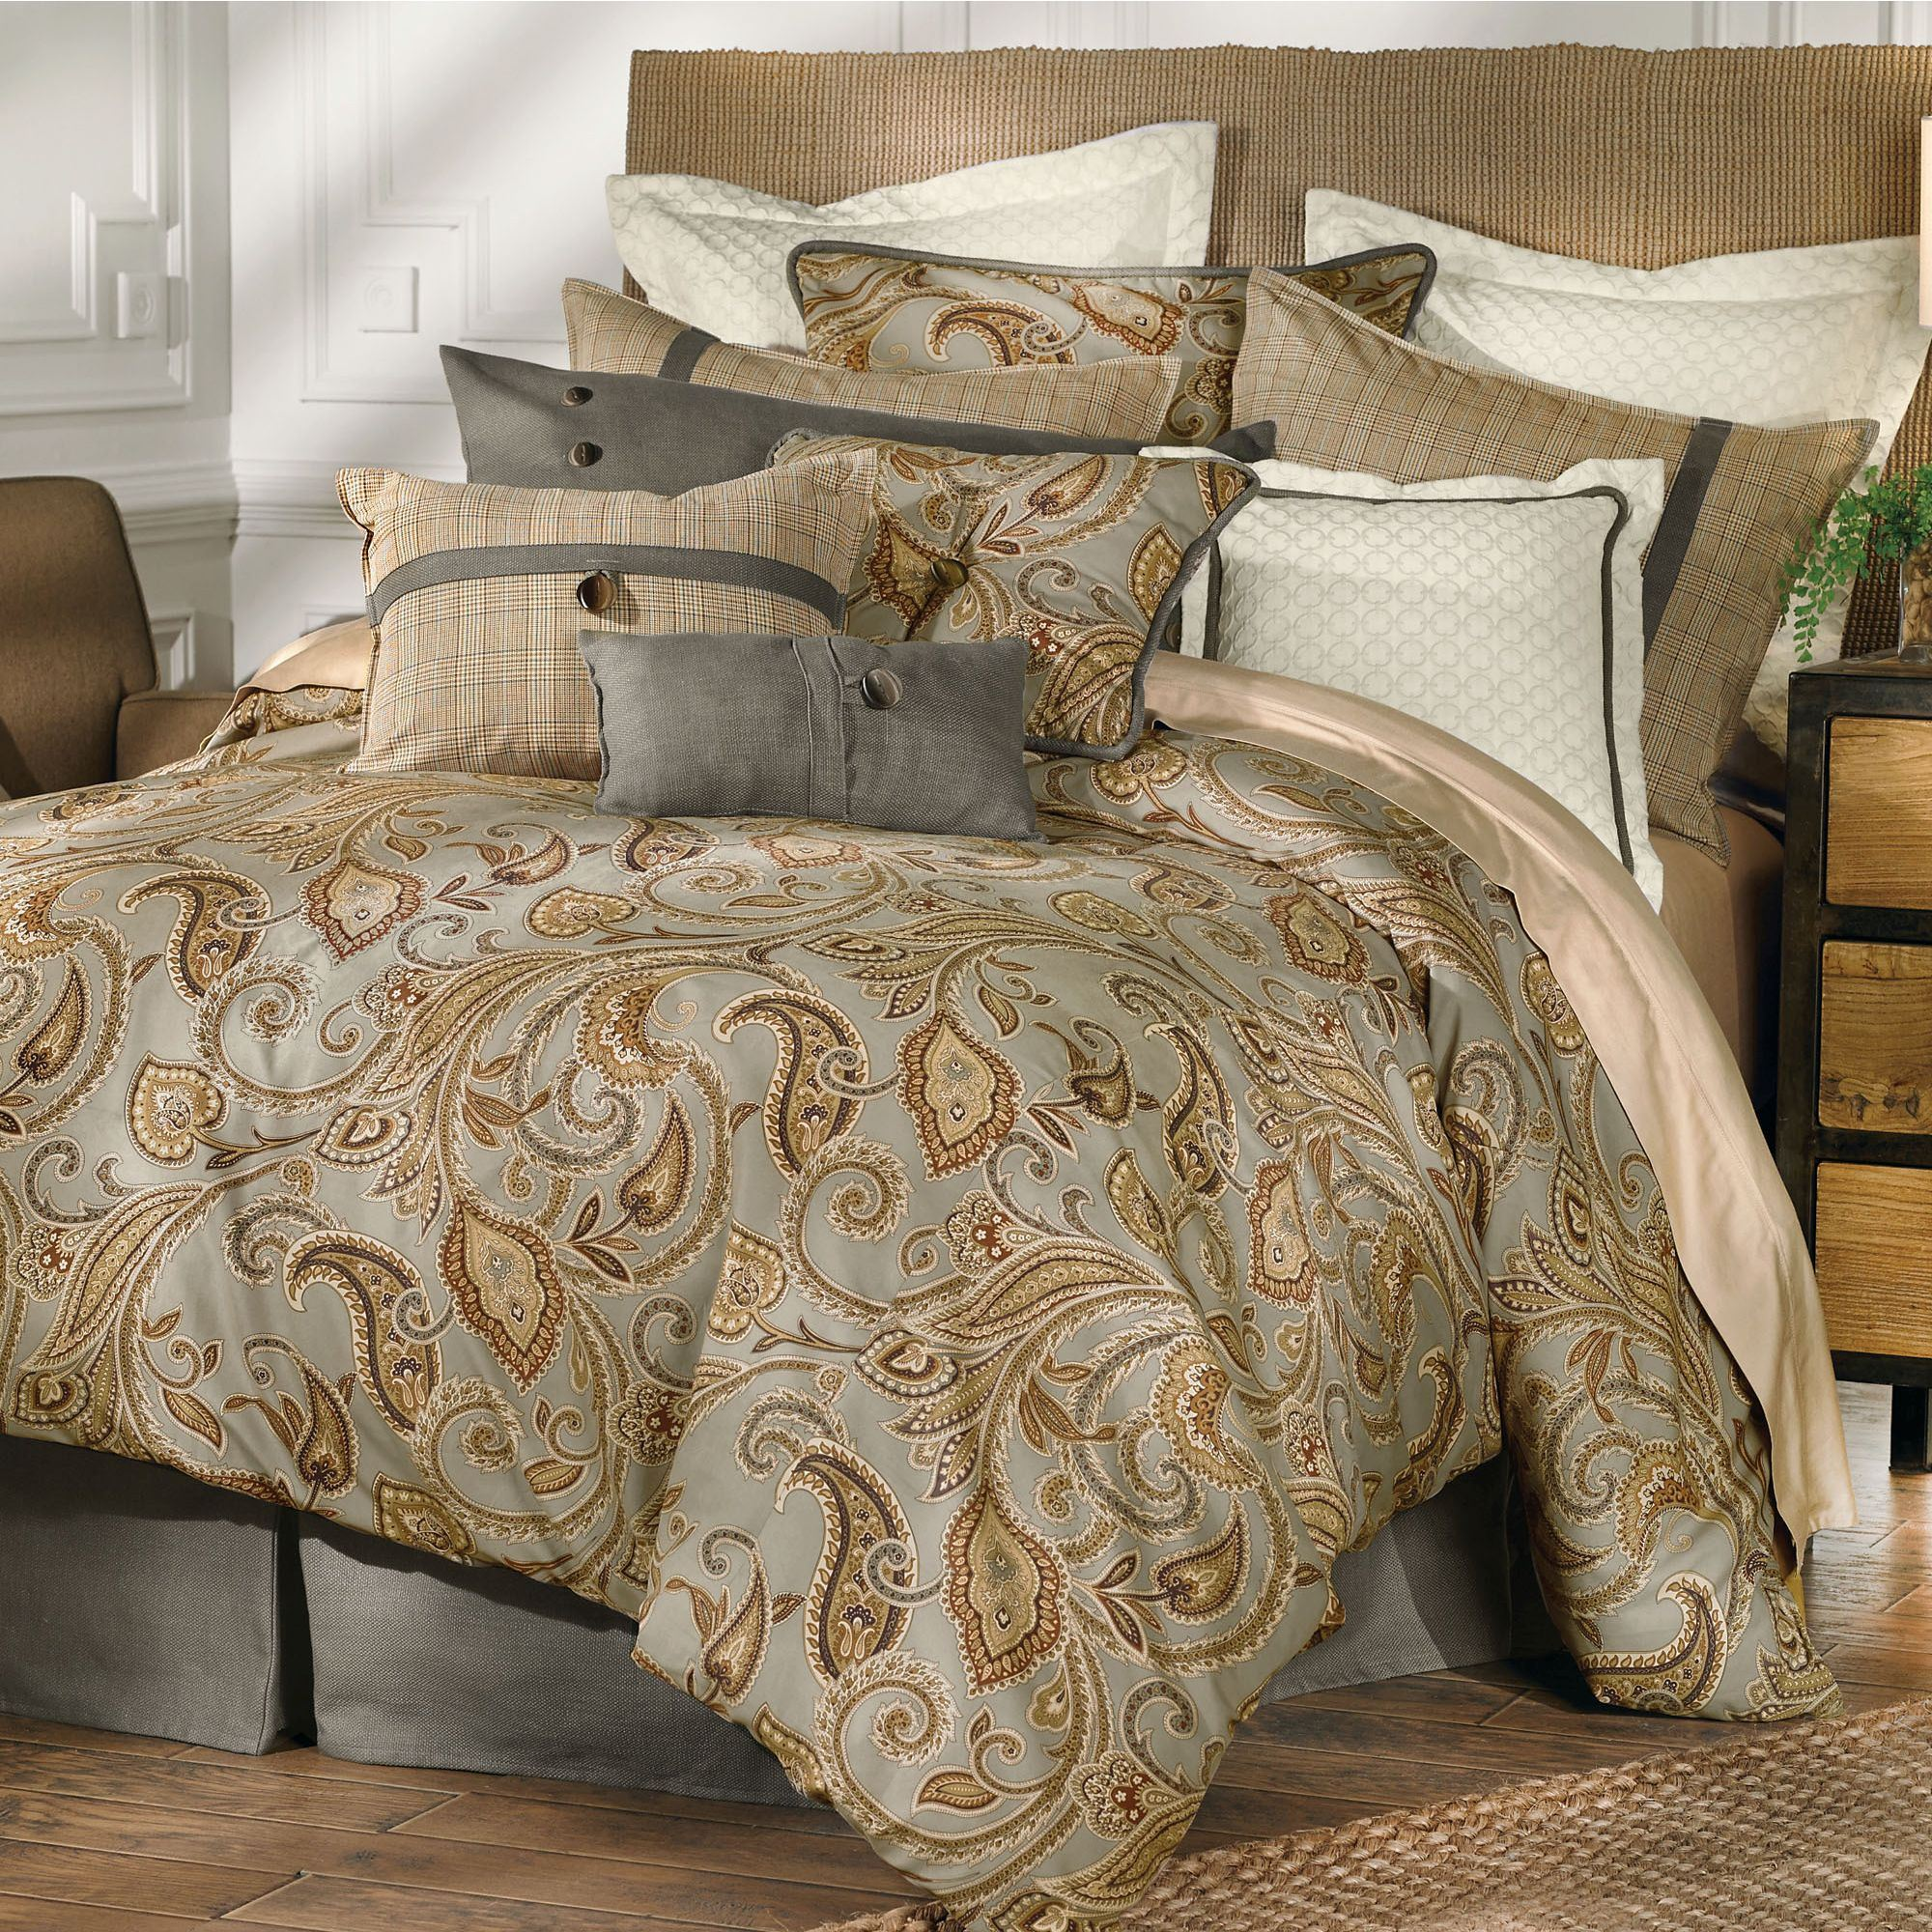 paisley company hi beckett cover ps sham store web covers duvet res the